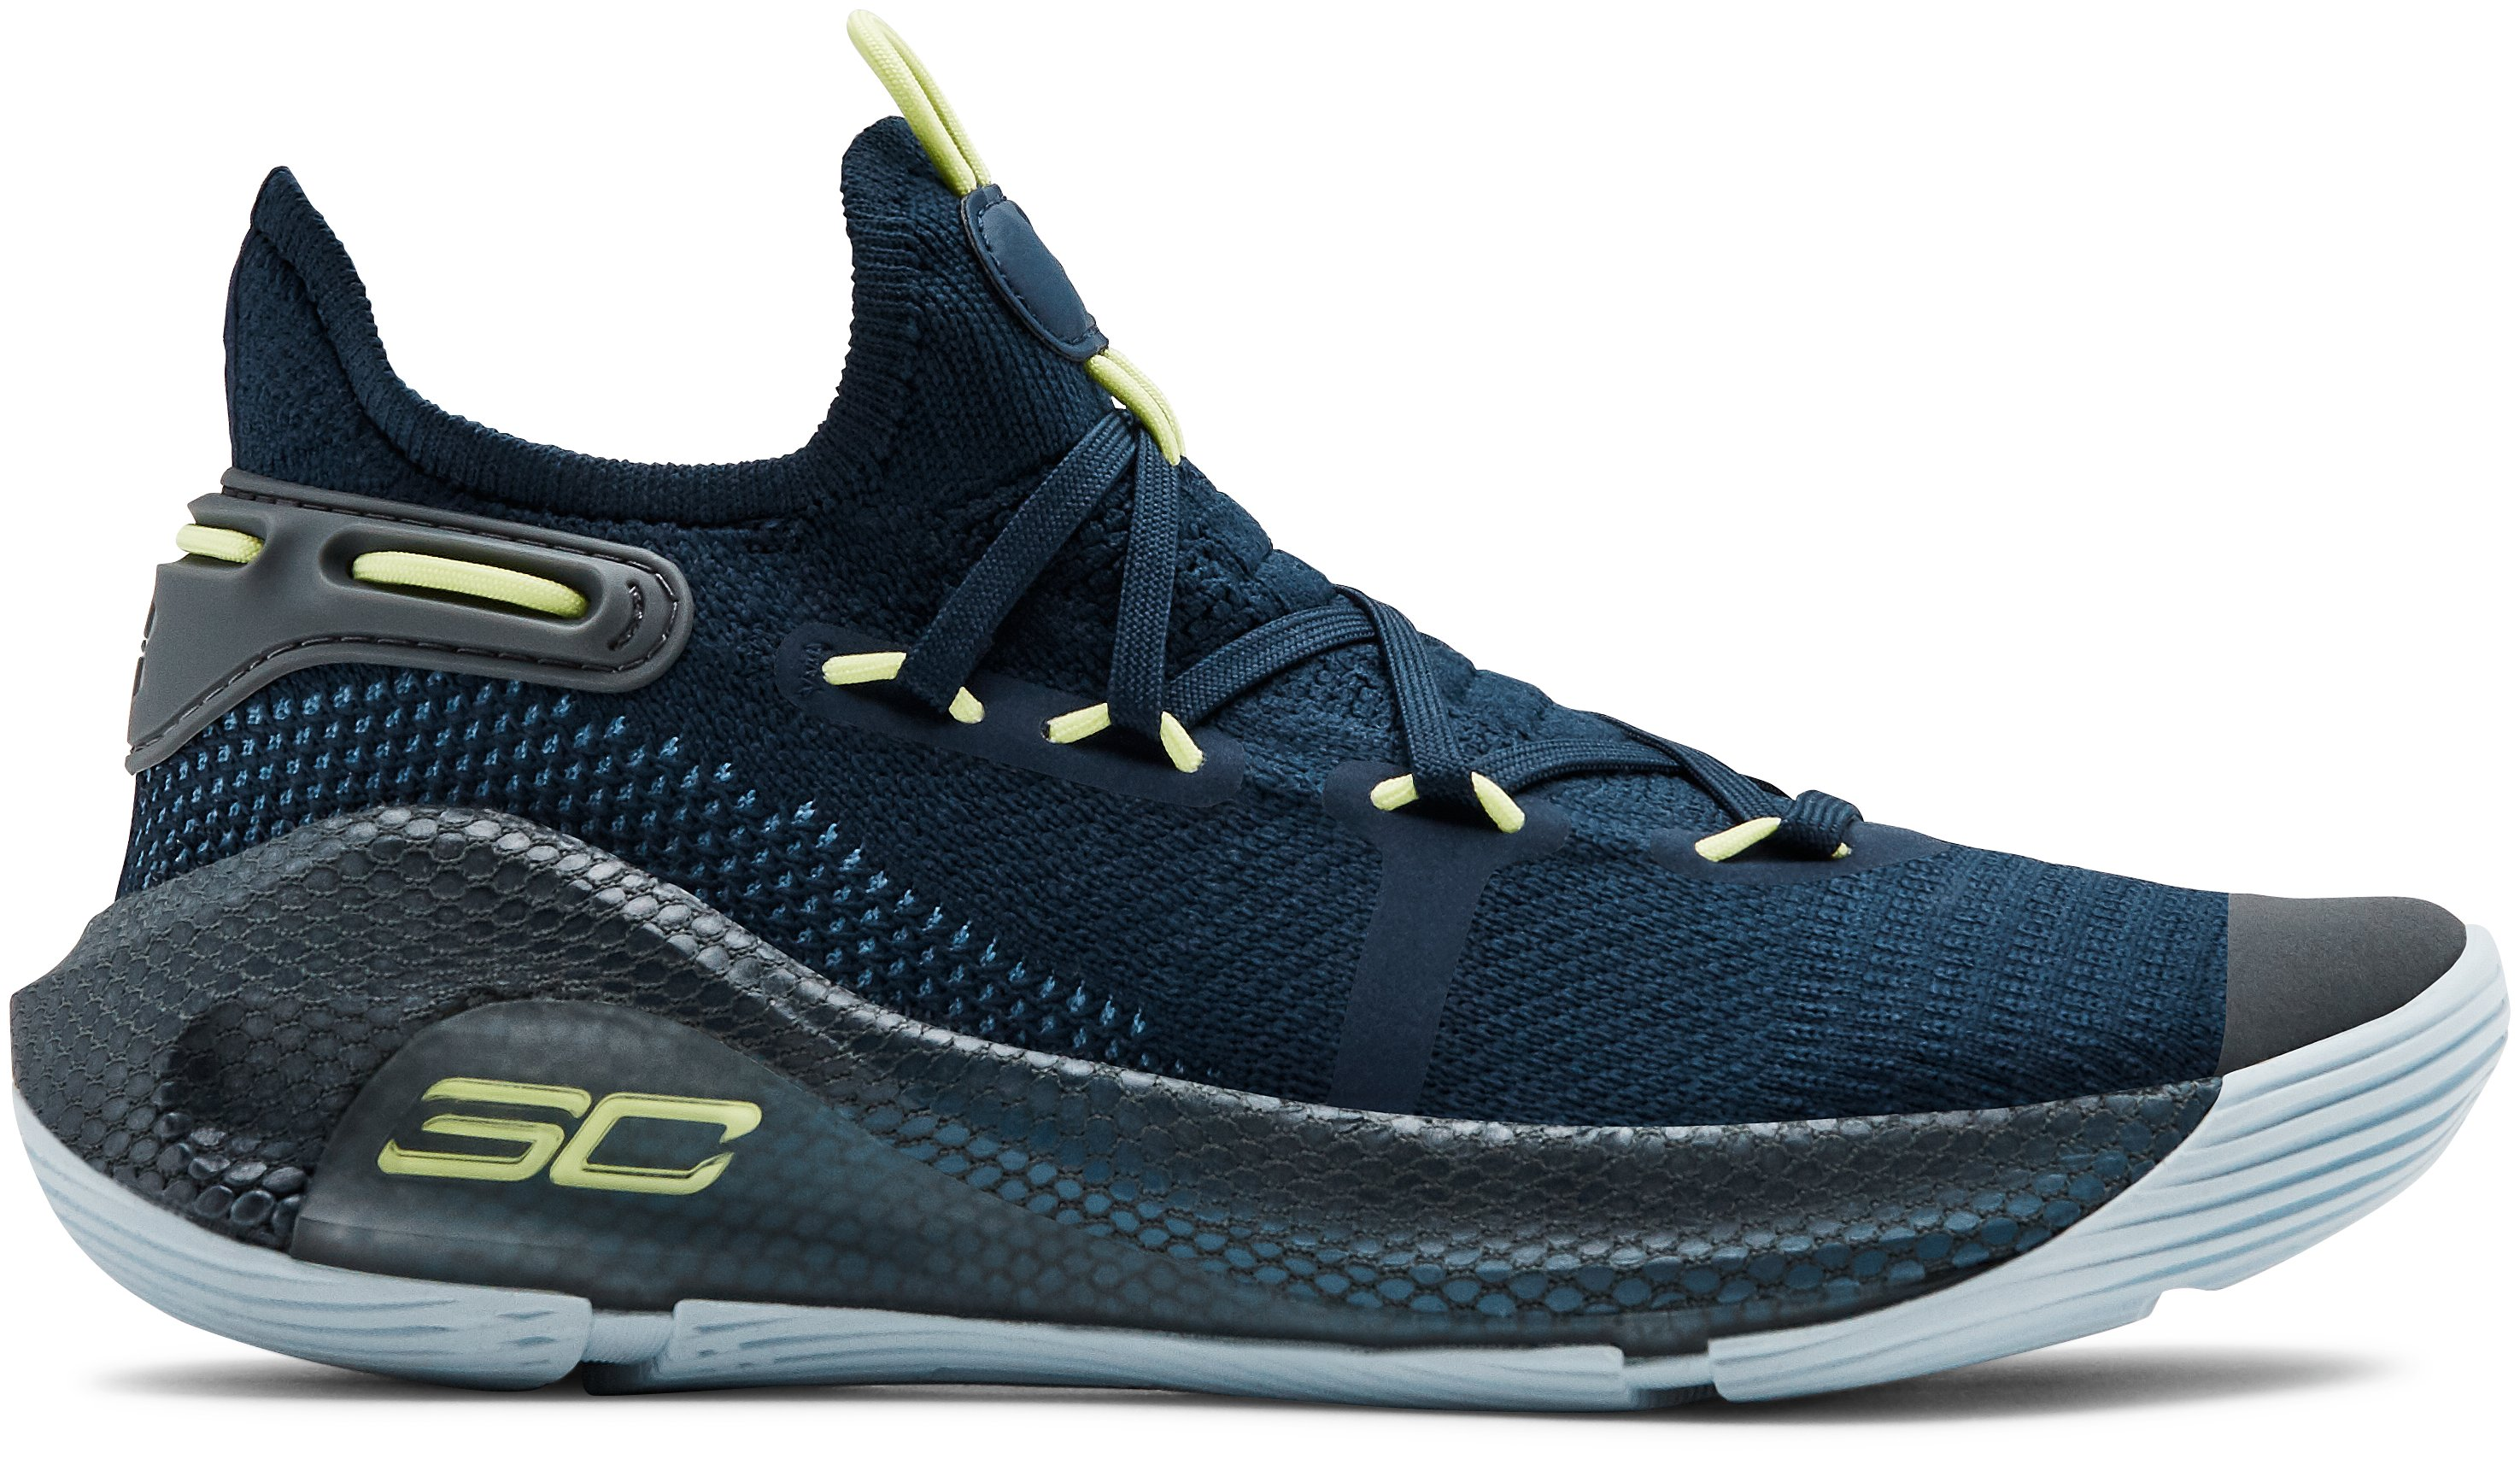 Basketballschuhe (Grundschule) UA Curry 6, 360 degree view